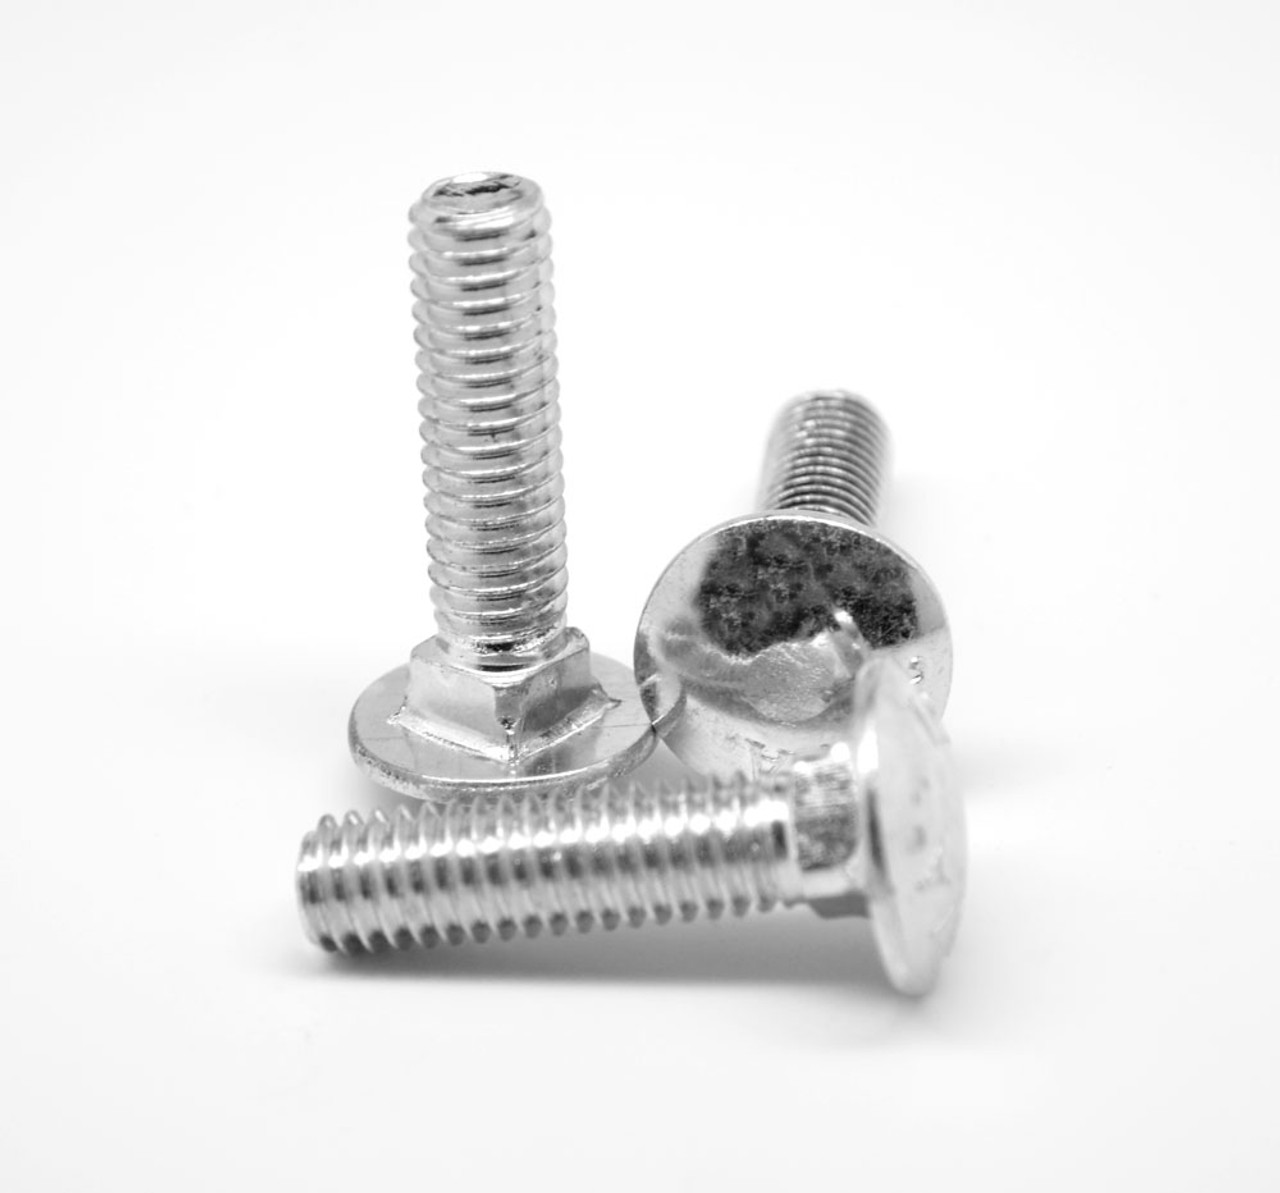 """#10-24 x 4"""" (FT) Coarse Thread A307 Grade A Carriage Bolt Low Carbon Steel Zinc Plated"""